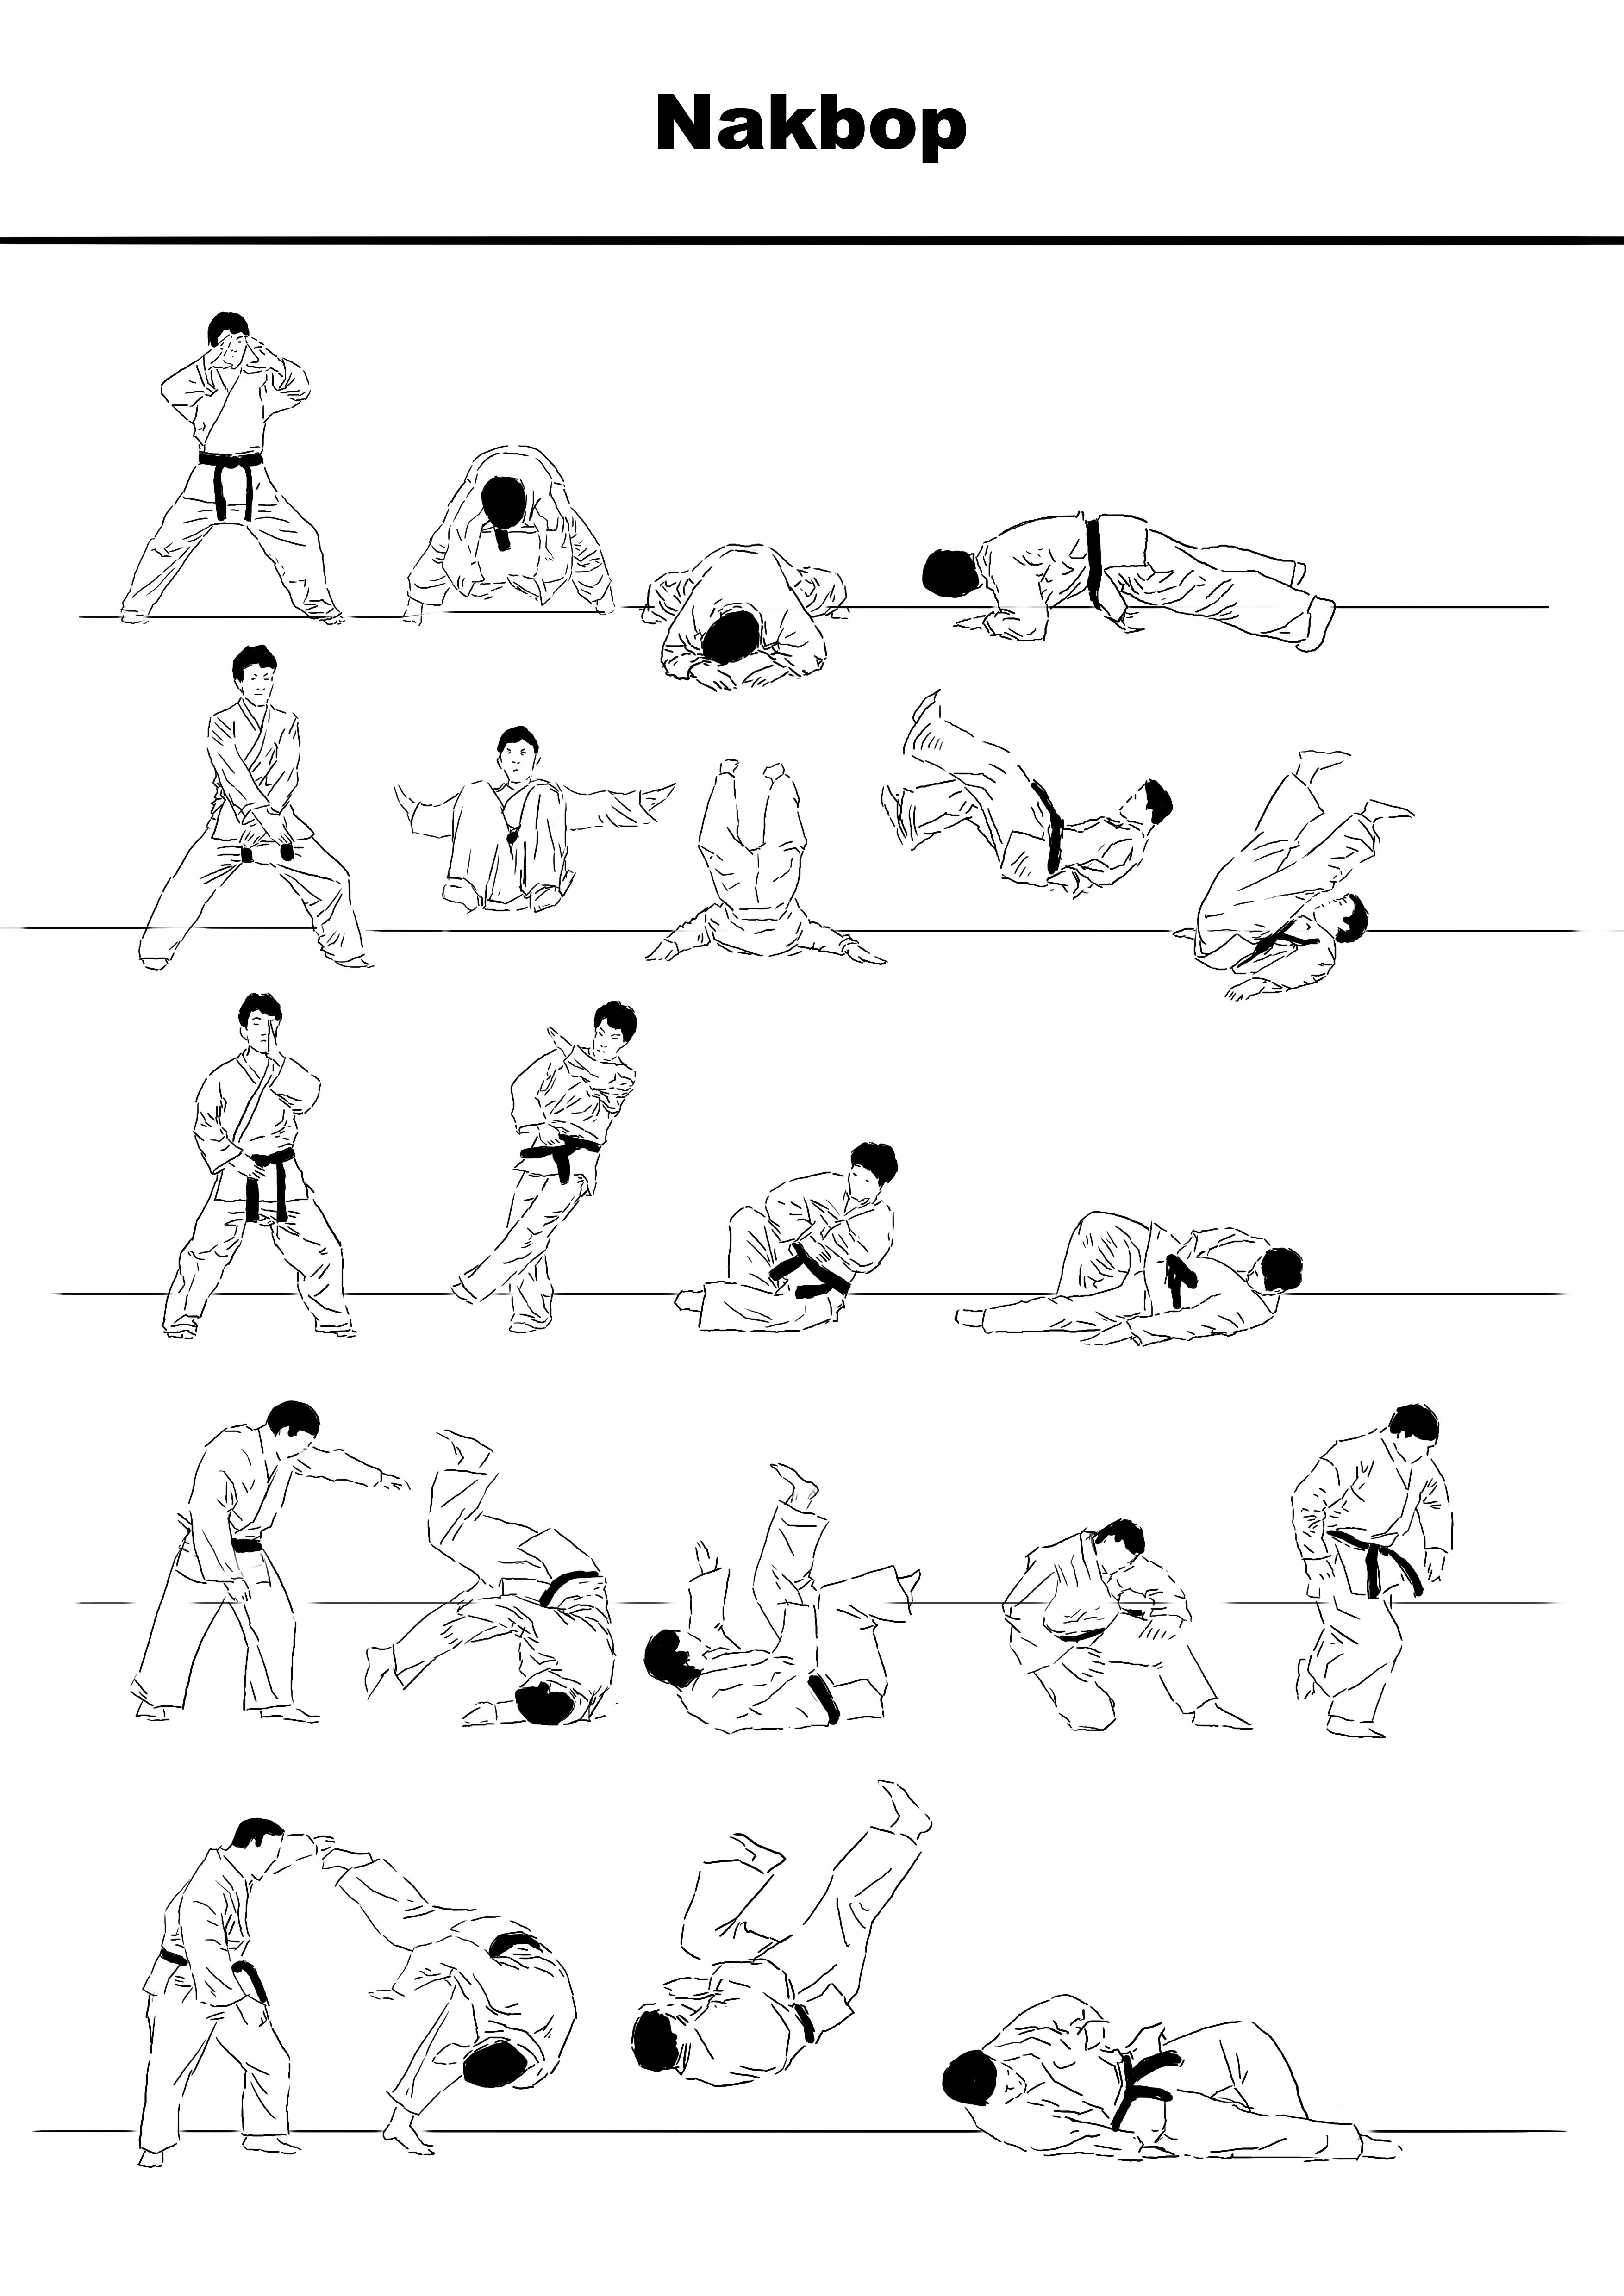 Because throws and takedowns are ubiquitous in Hapkido